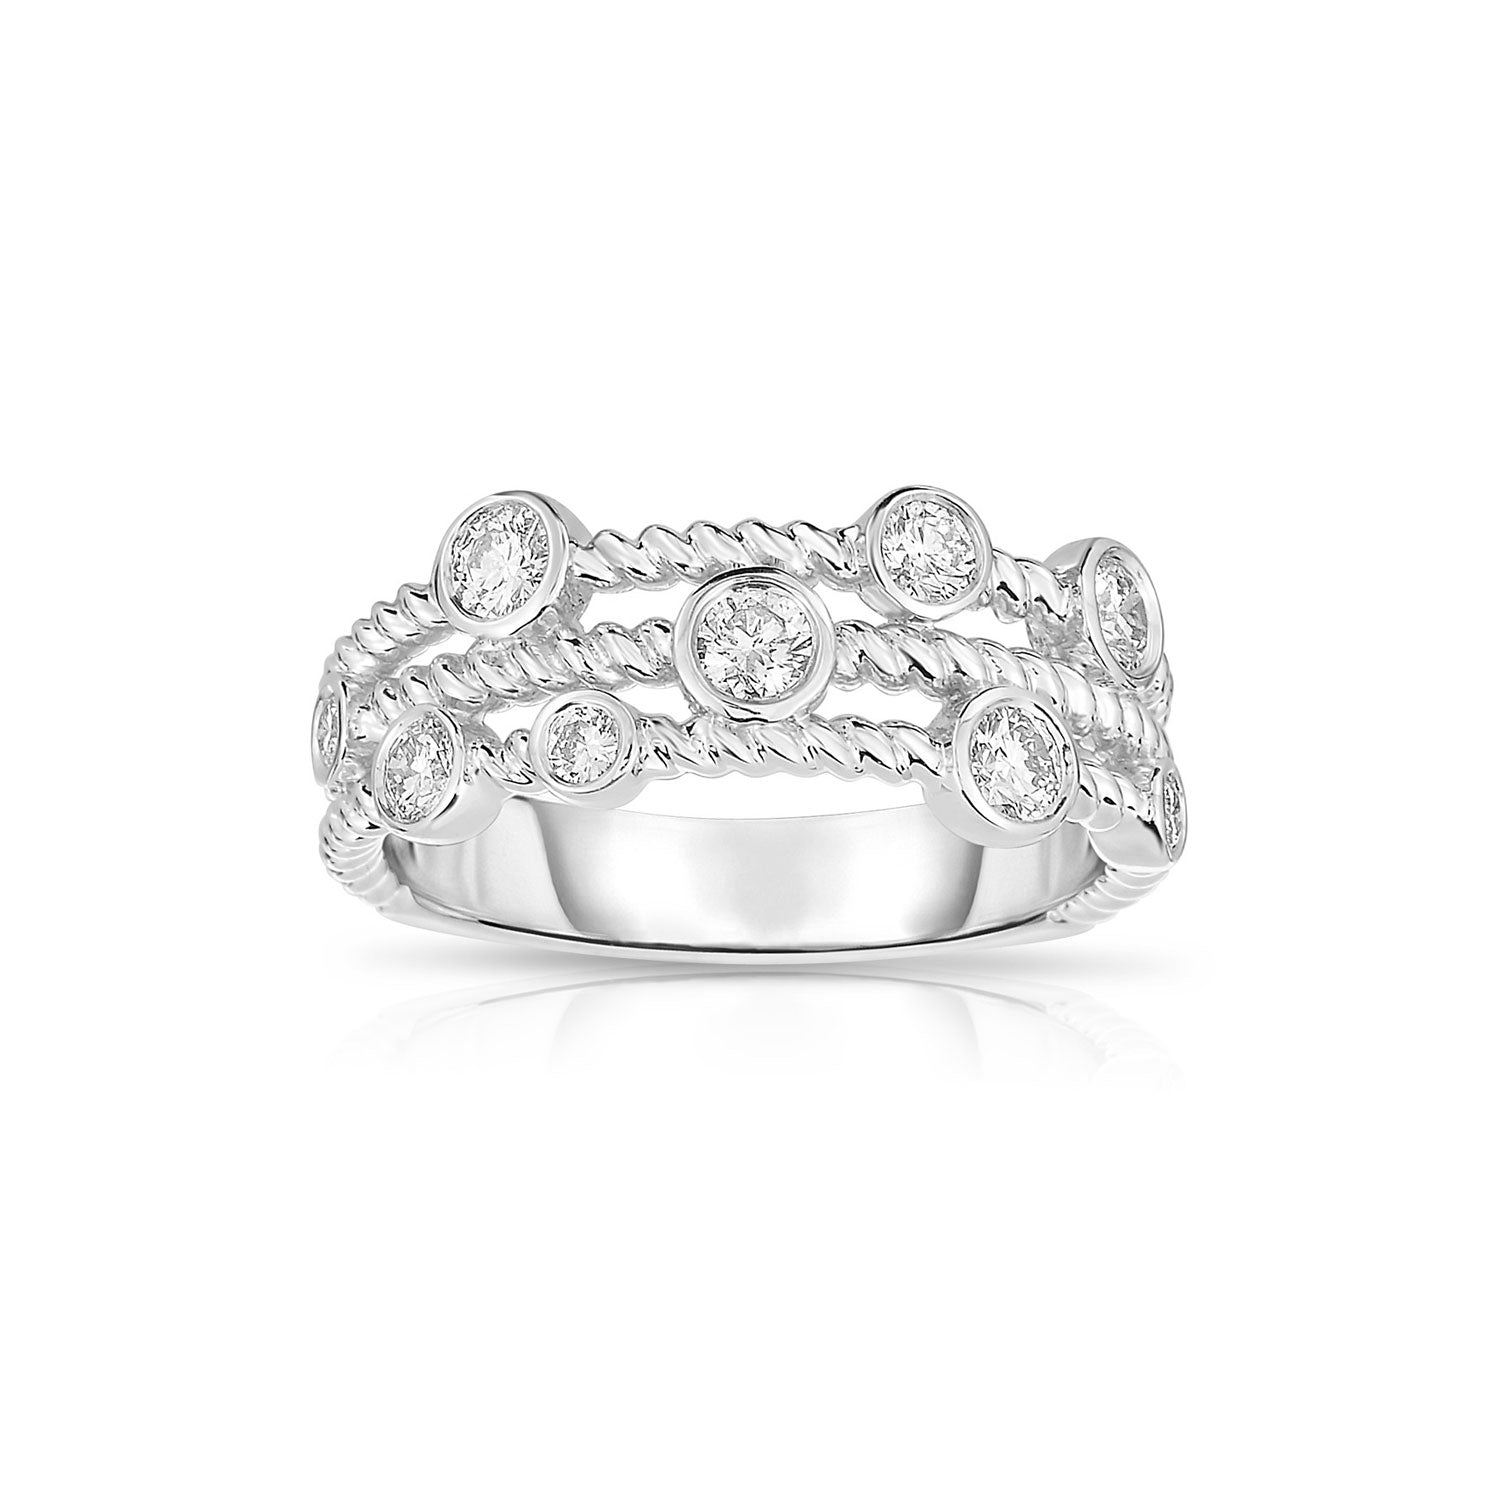 Three Strand Rope Design Diamond Ring, 14K White Gold